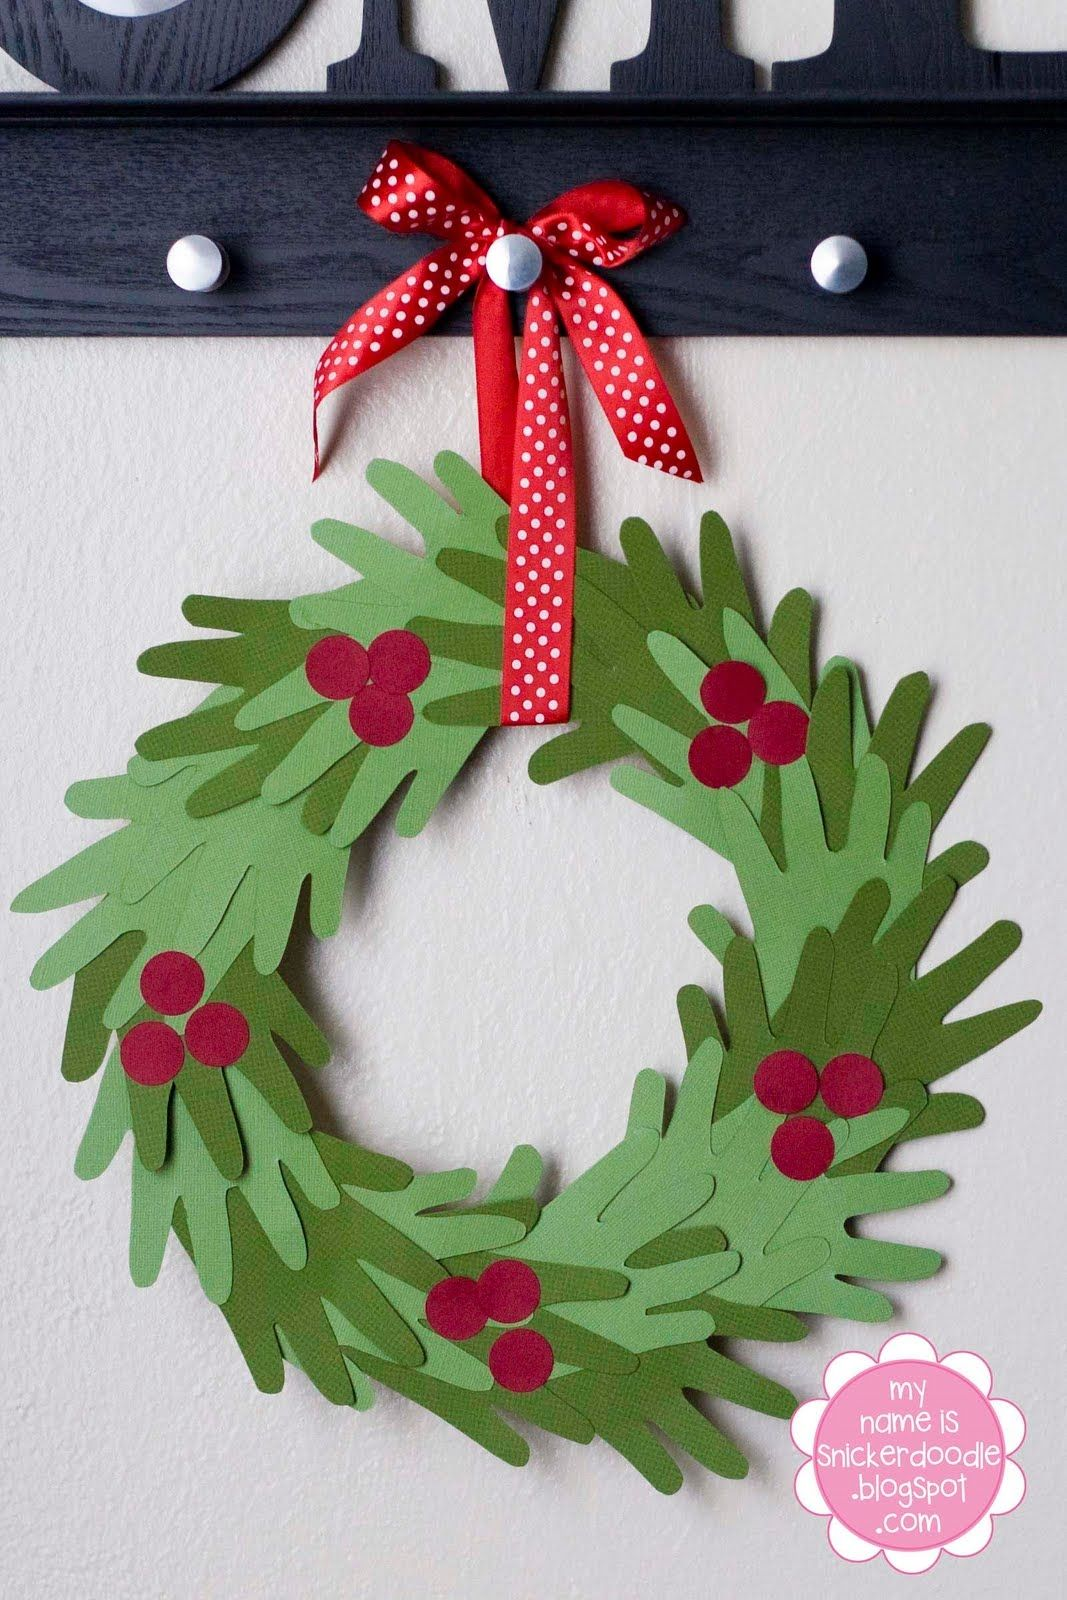 Hands Construction Paper Wreath diy christmas christmas